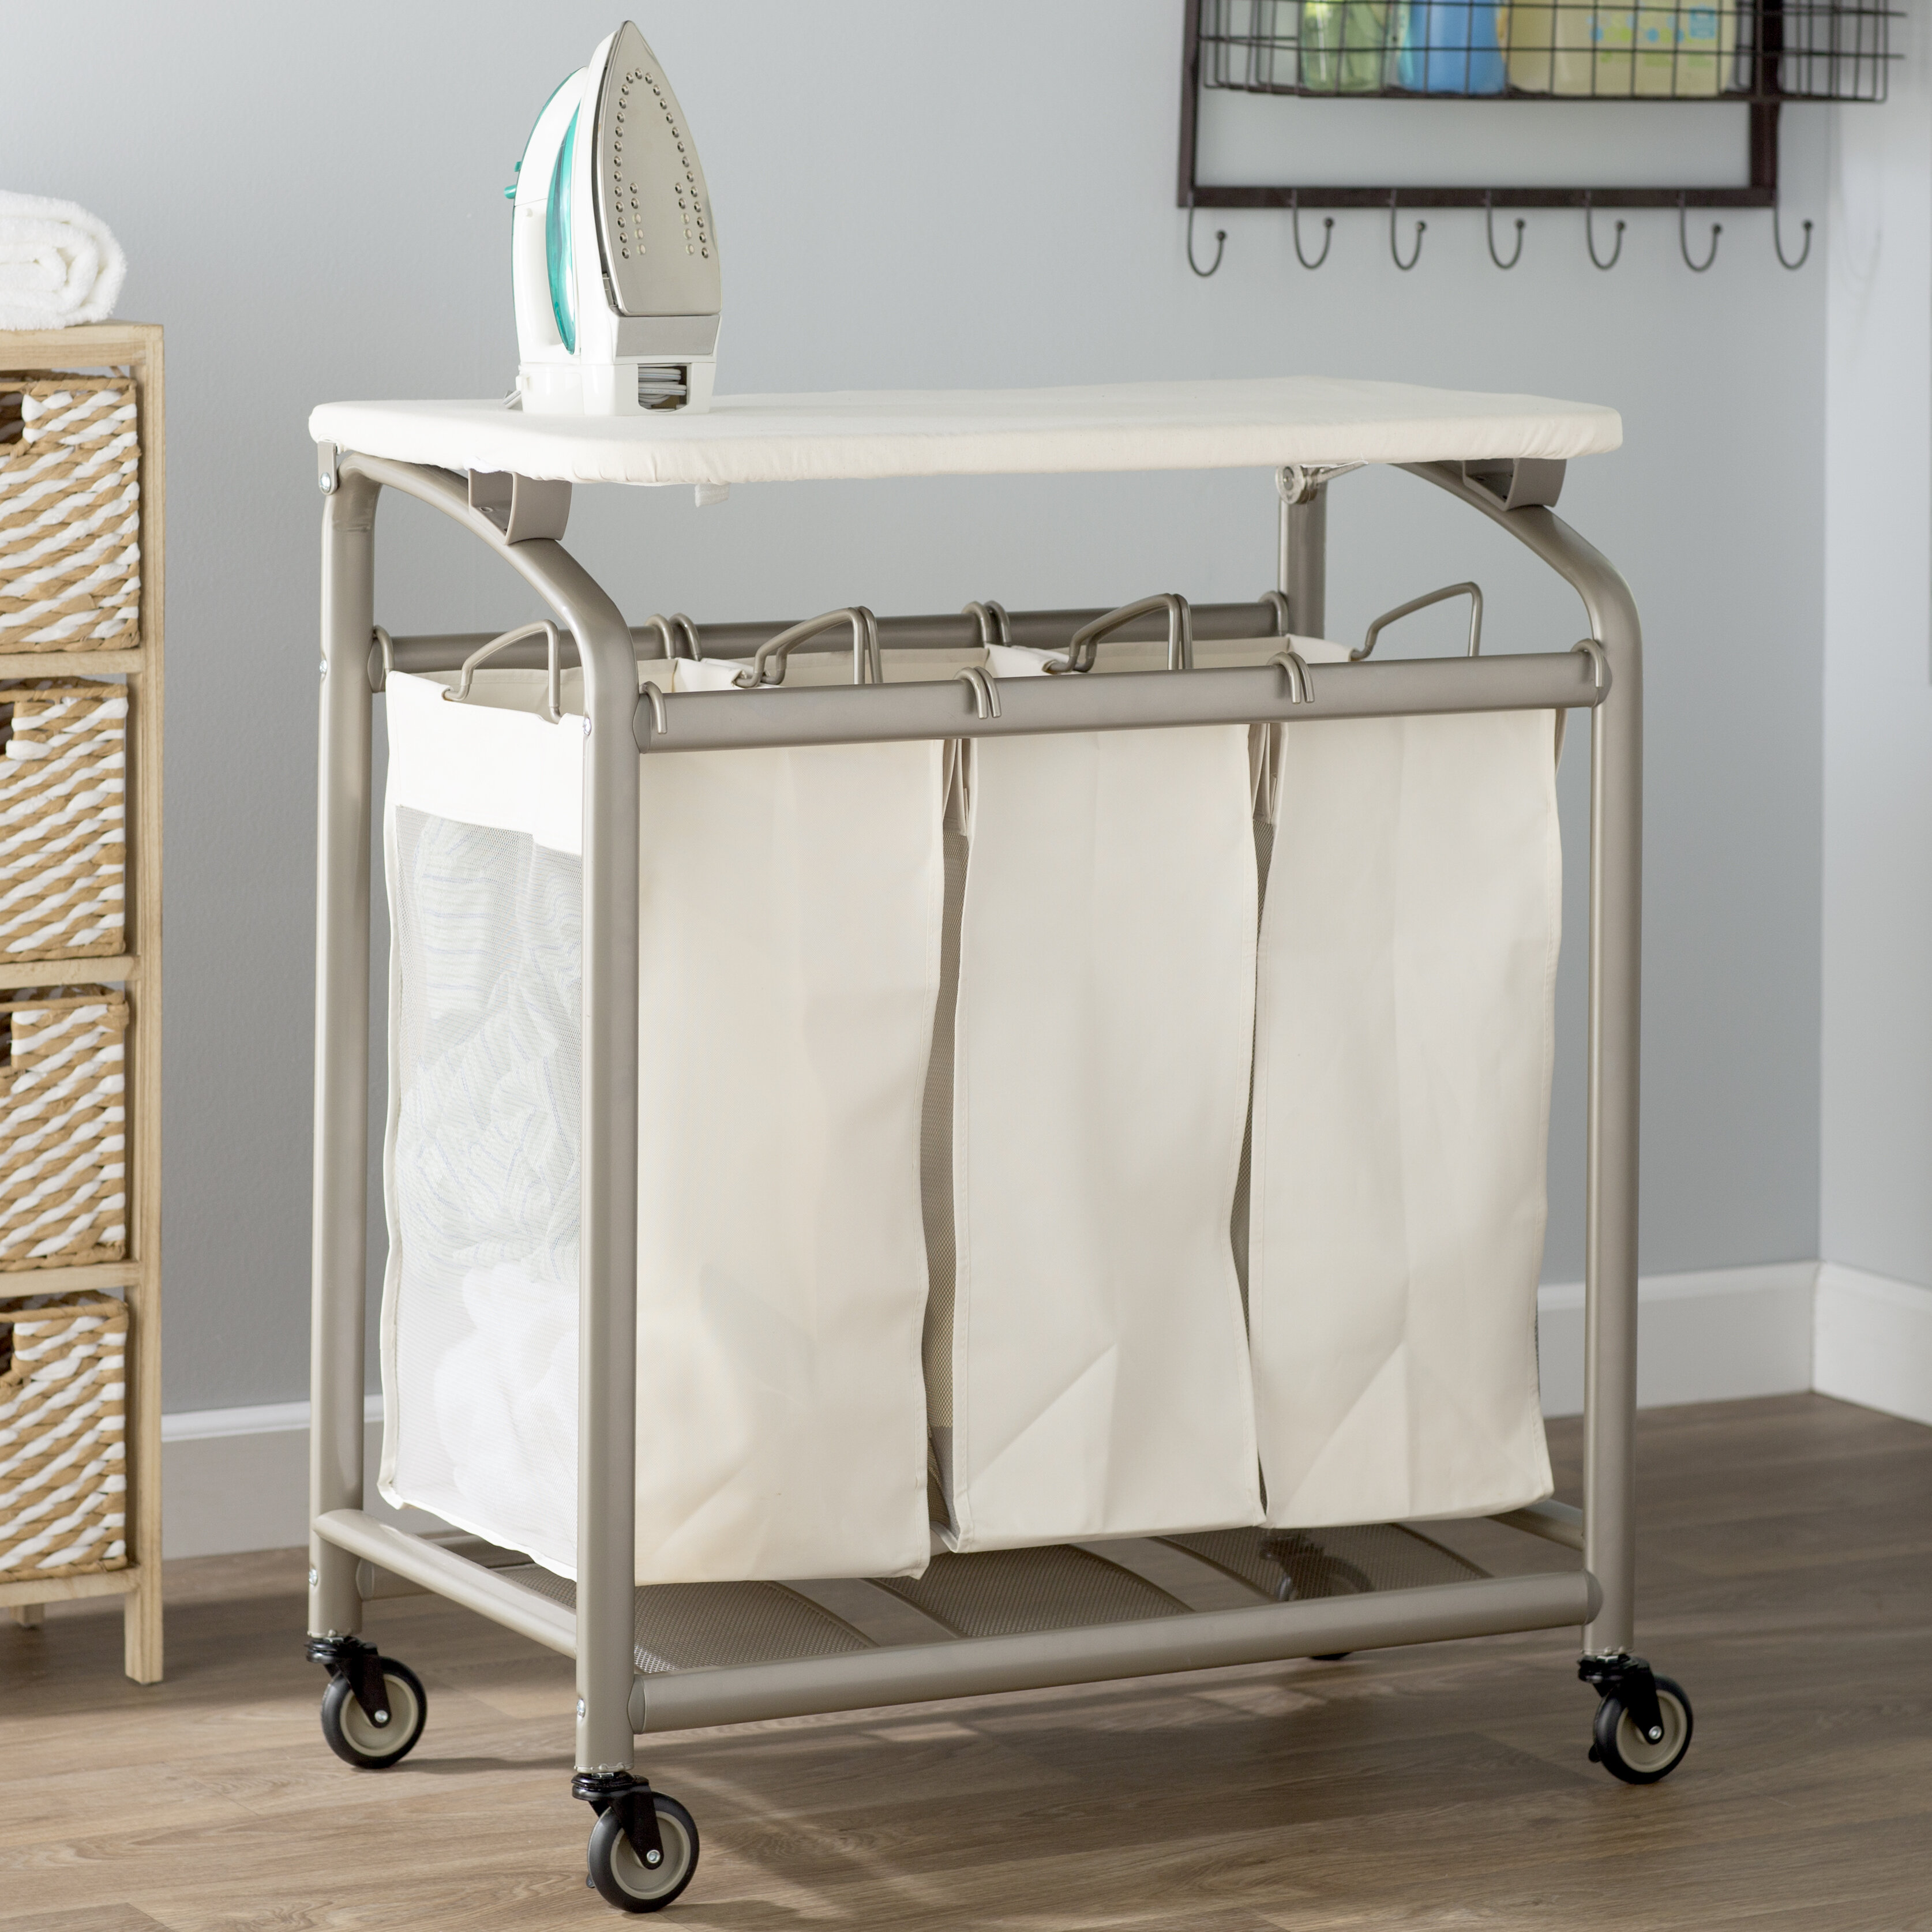 - The Twillery Co. Laundry Sorter Hamper With Folding Table